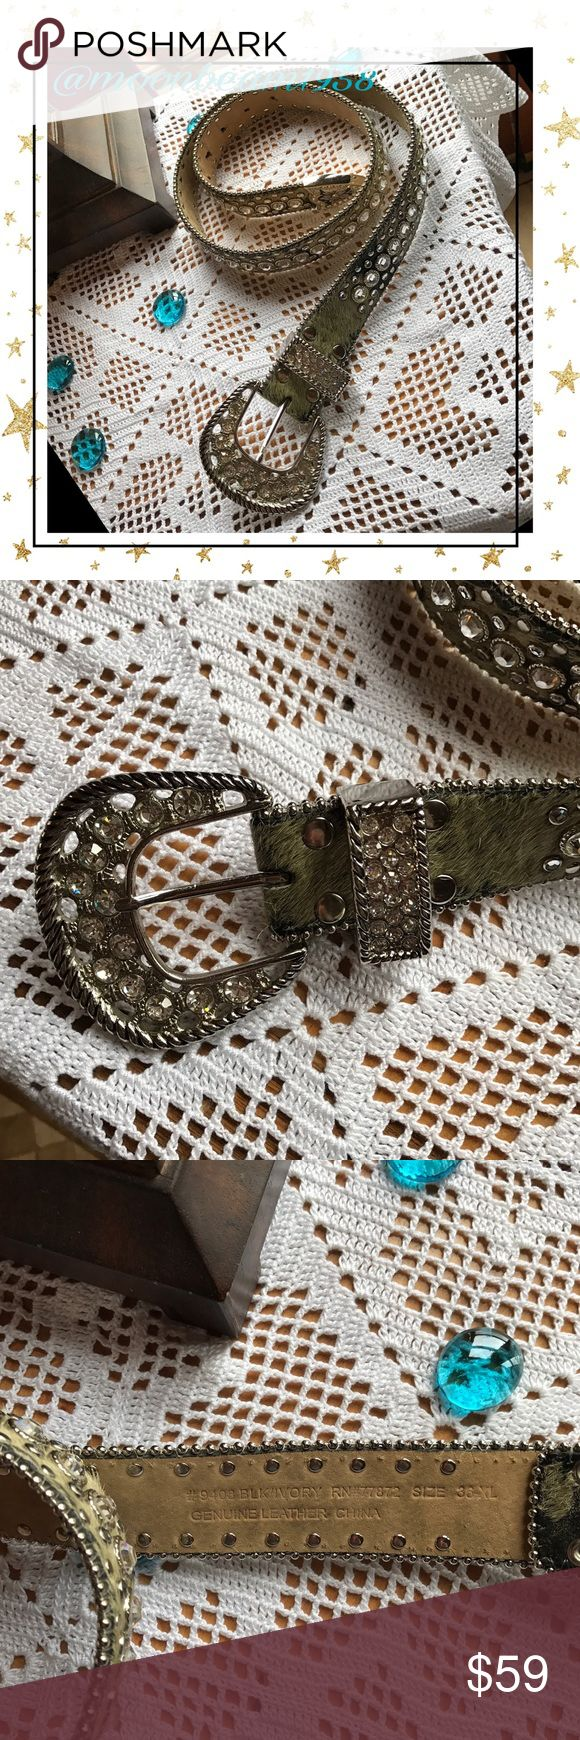 """Western belt🌵💕🦋 🌵🦋🐝💕Beautiful western bling belt! Leather with rhinestones and silver studs. Absolutely gorgeous! Is a size 36"""" XL but can be worn low in hips for a small or medium. Very stunning and sturdy! Accessories Belts"""